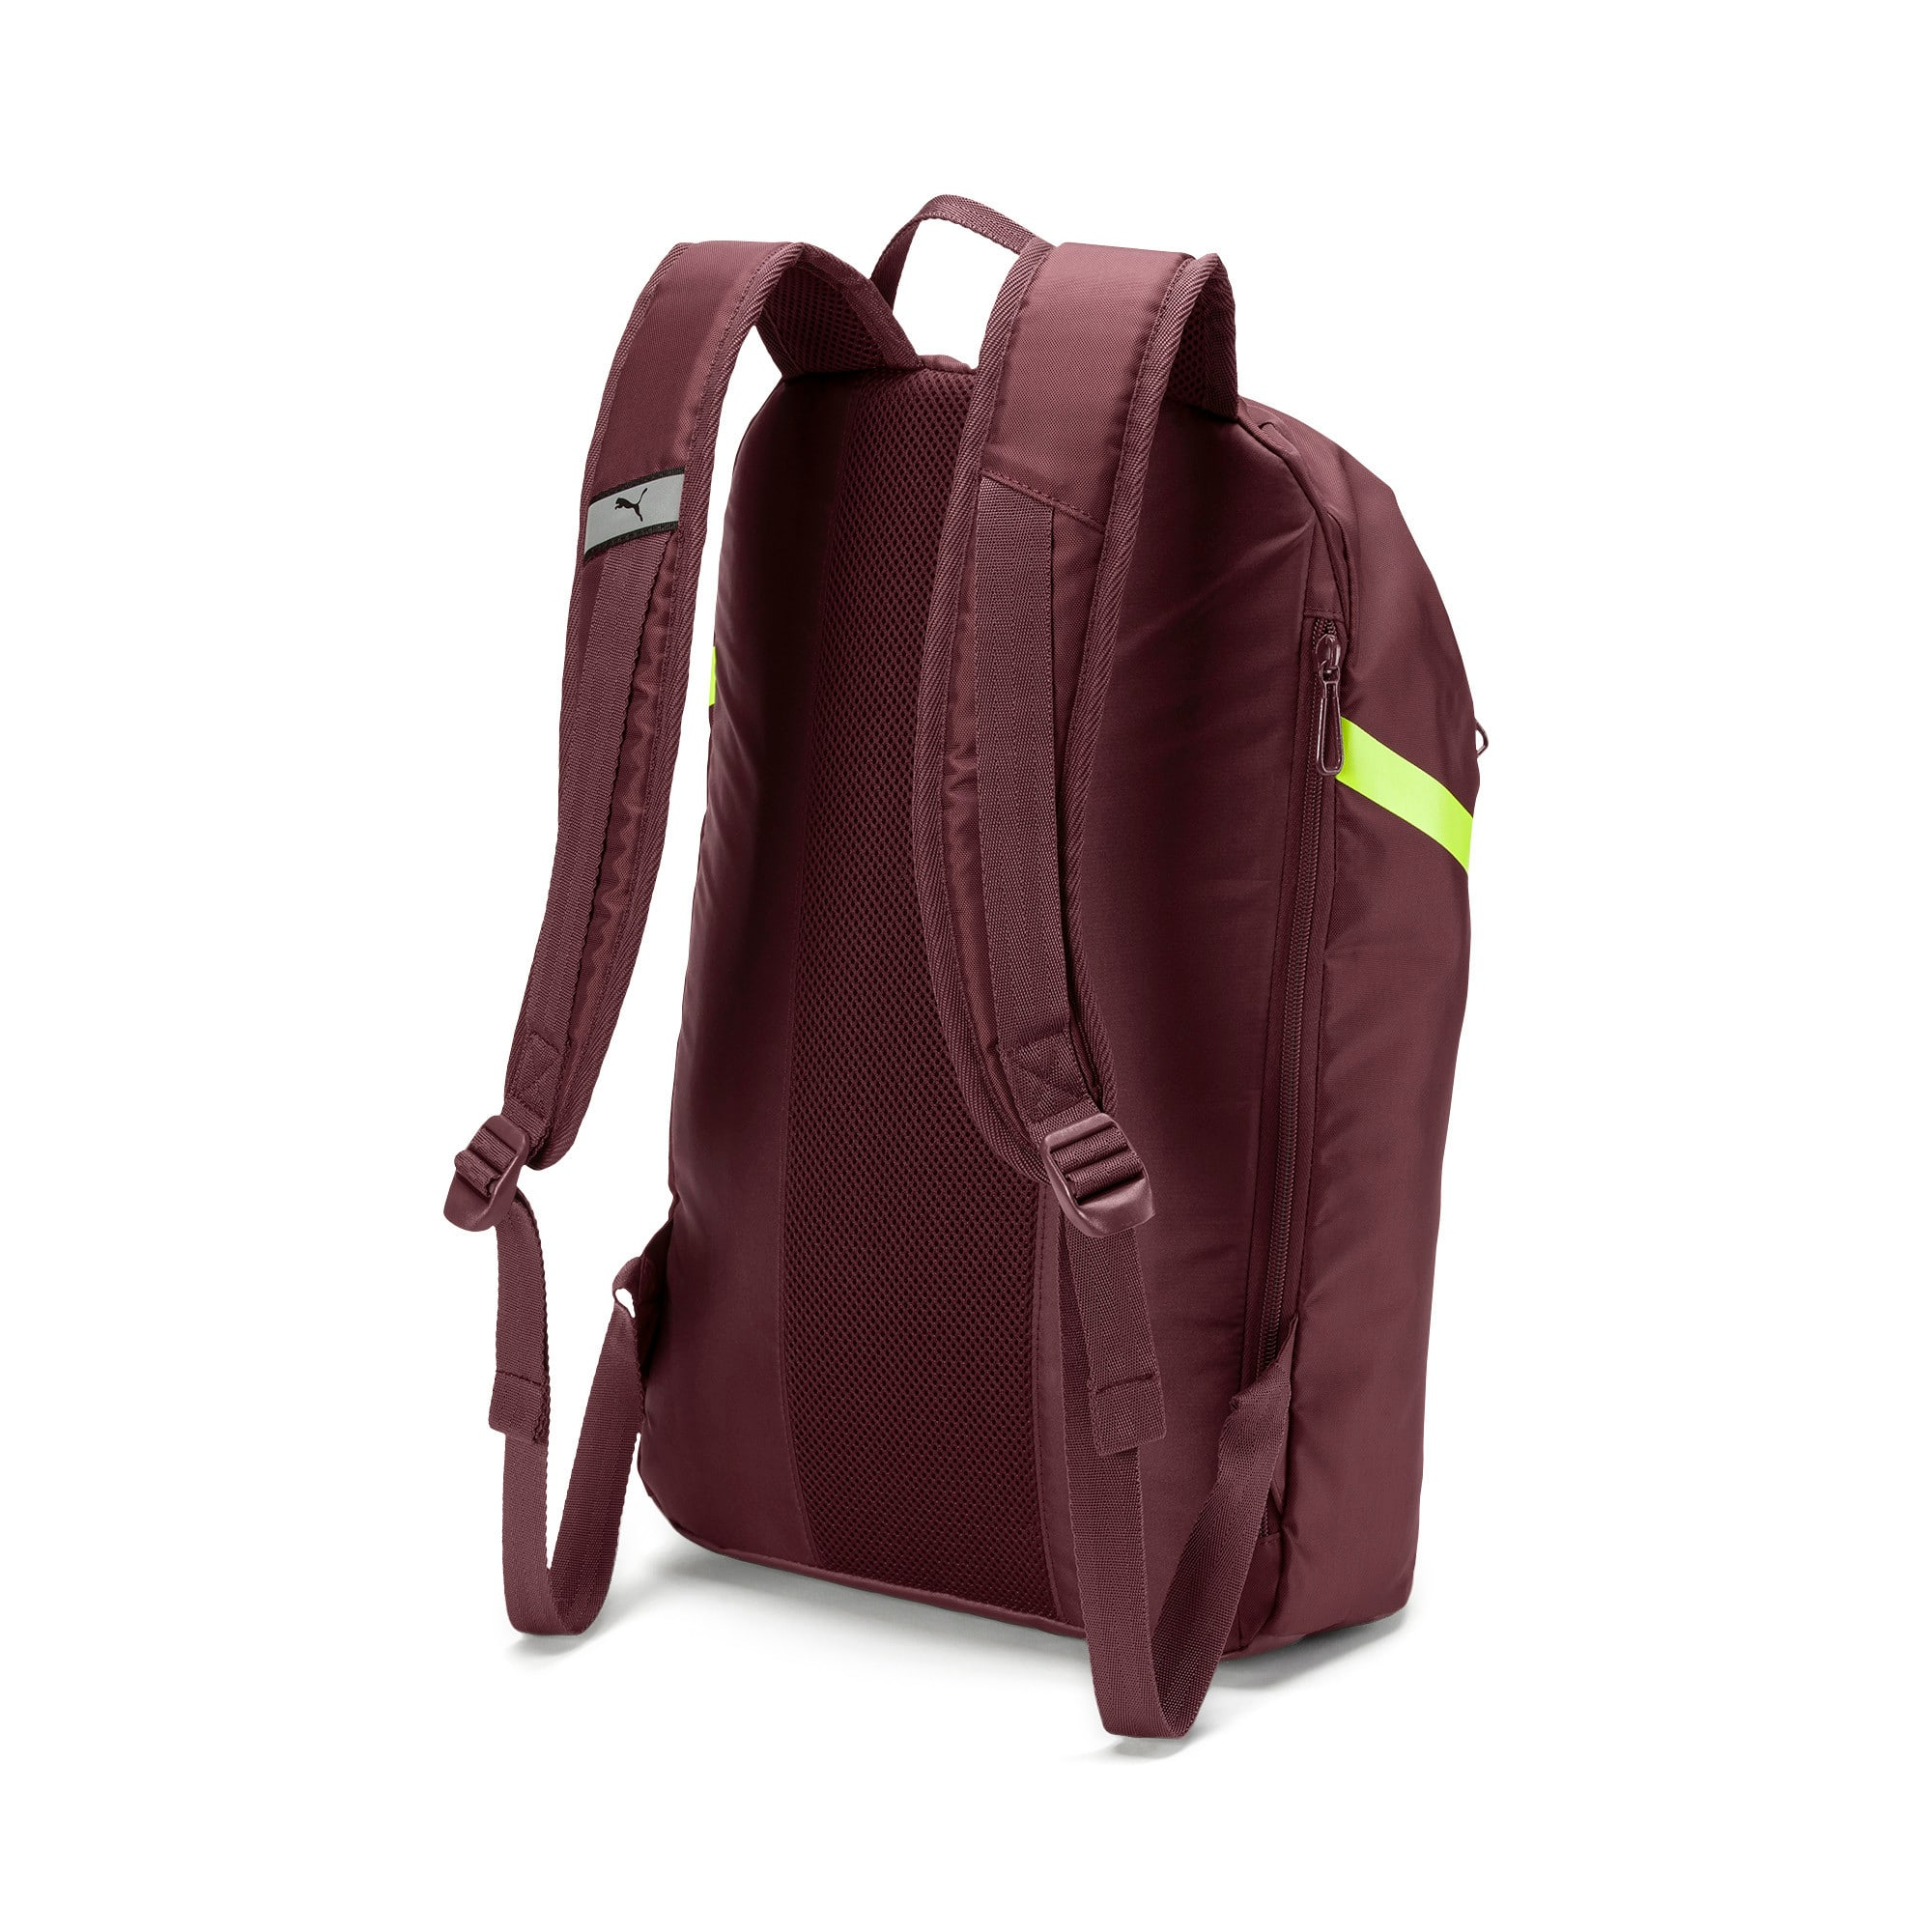 Thumbnail 3 of Active Training Shift Women's Backpack, Vineyard Wine, medium-IND